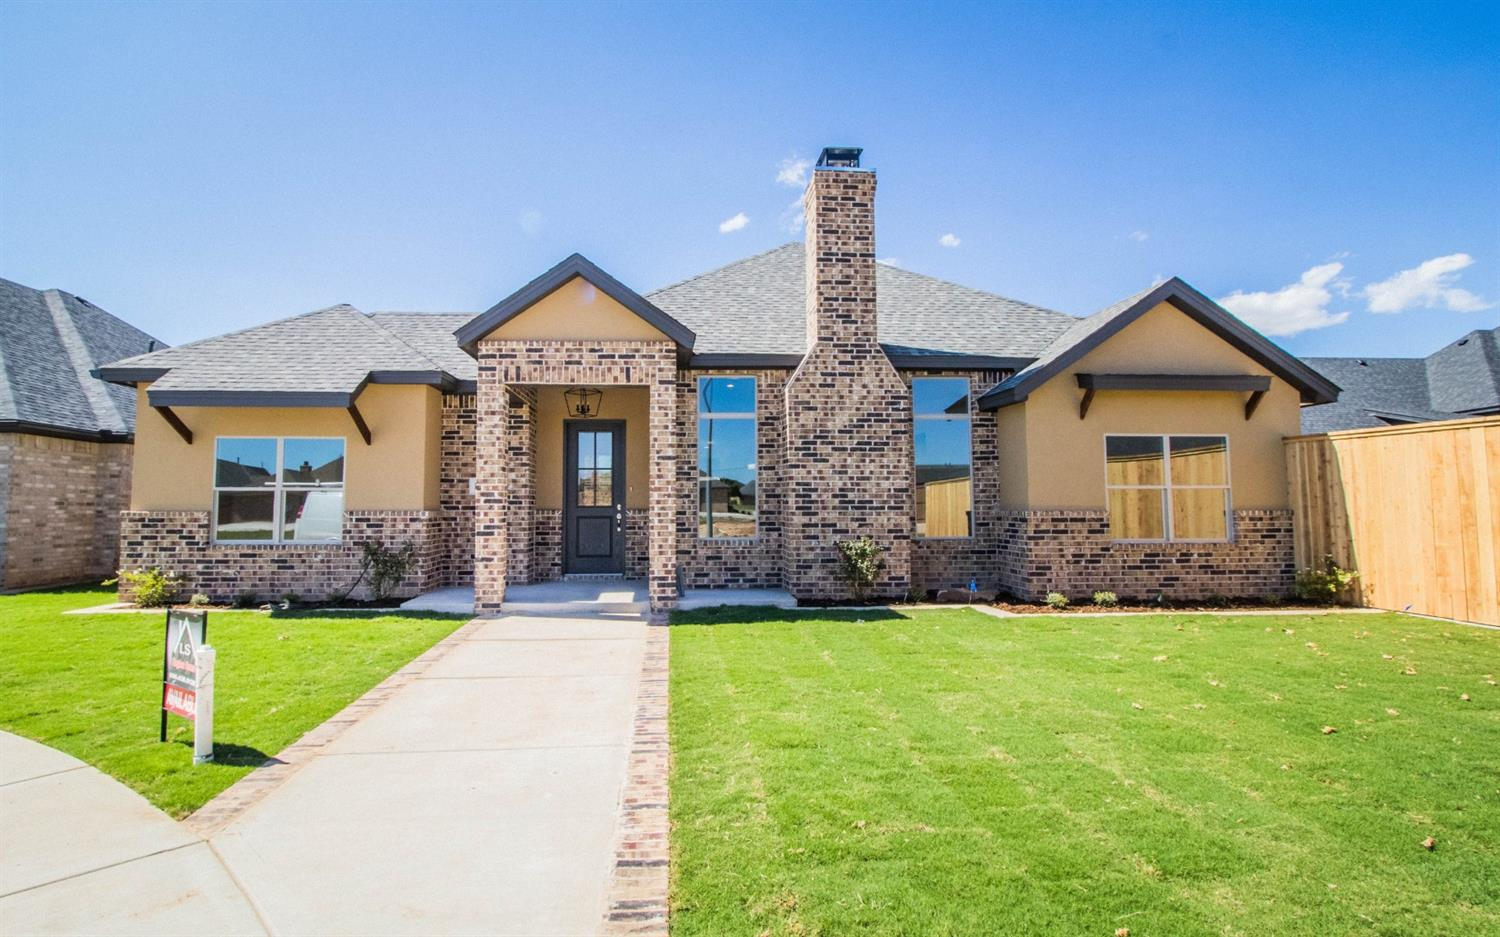 NOW COMPLETE! This beautiful 4/3/3 LS Kingdom Homes garden home is now finished and ready for it's new owner!  The elegant entry way and living area invite you in with stylish herringbone patterned floors and an open concept leading to the beautiful designer kitchen featuring granite countertops and all stainless steel appliances.  Get ready to entertain as large windows surround you letting in welcomed natural light and allow for views to the oversized covered back patio from the entry, kitchen and living areas.  The master bedroom is to die for with a vaulted ceiling and wood beam accent.  The master bathroom impresses with a double vanity, counter to ceiling tile backsplash and polished gold hardware! The large master closet will not disappoint either with lots of space and built-ins for storage.  Guest bedrooms are a great size and both guest bathrooms continue to shine with designer tile showers and beautiful natural stone counter tops. Rear entry 3-car garage. Come see it today!